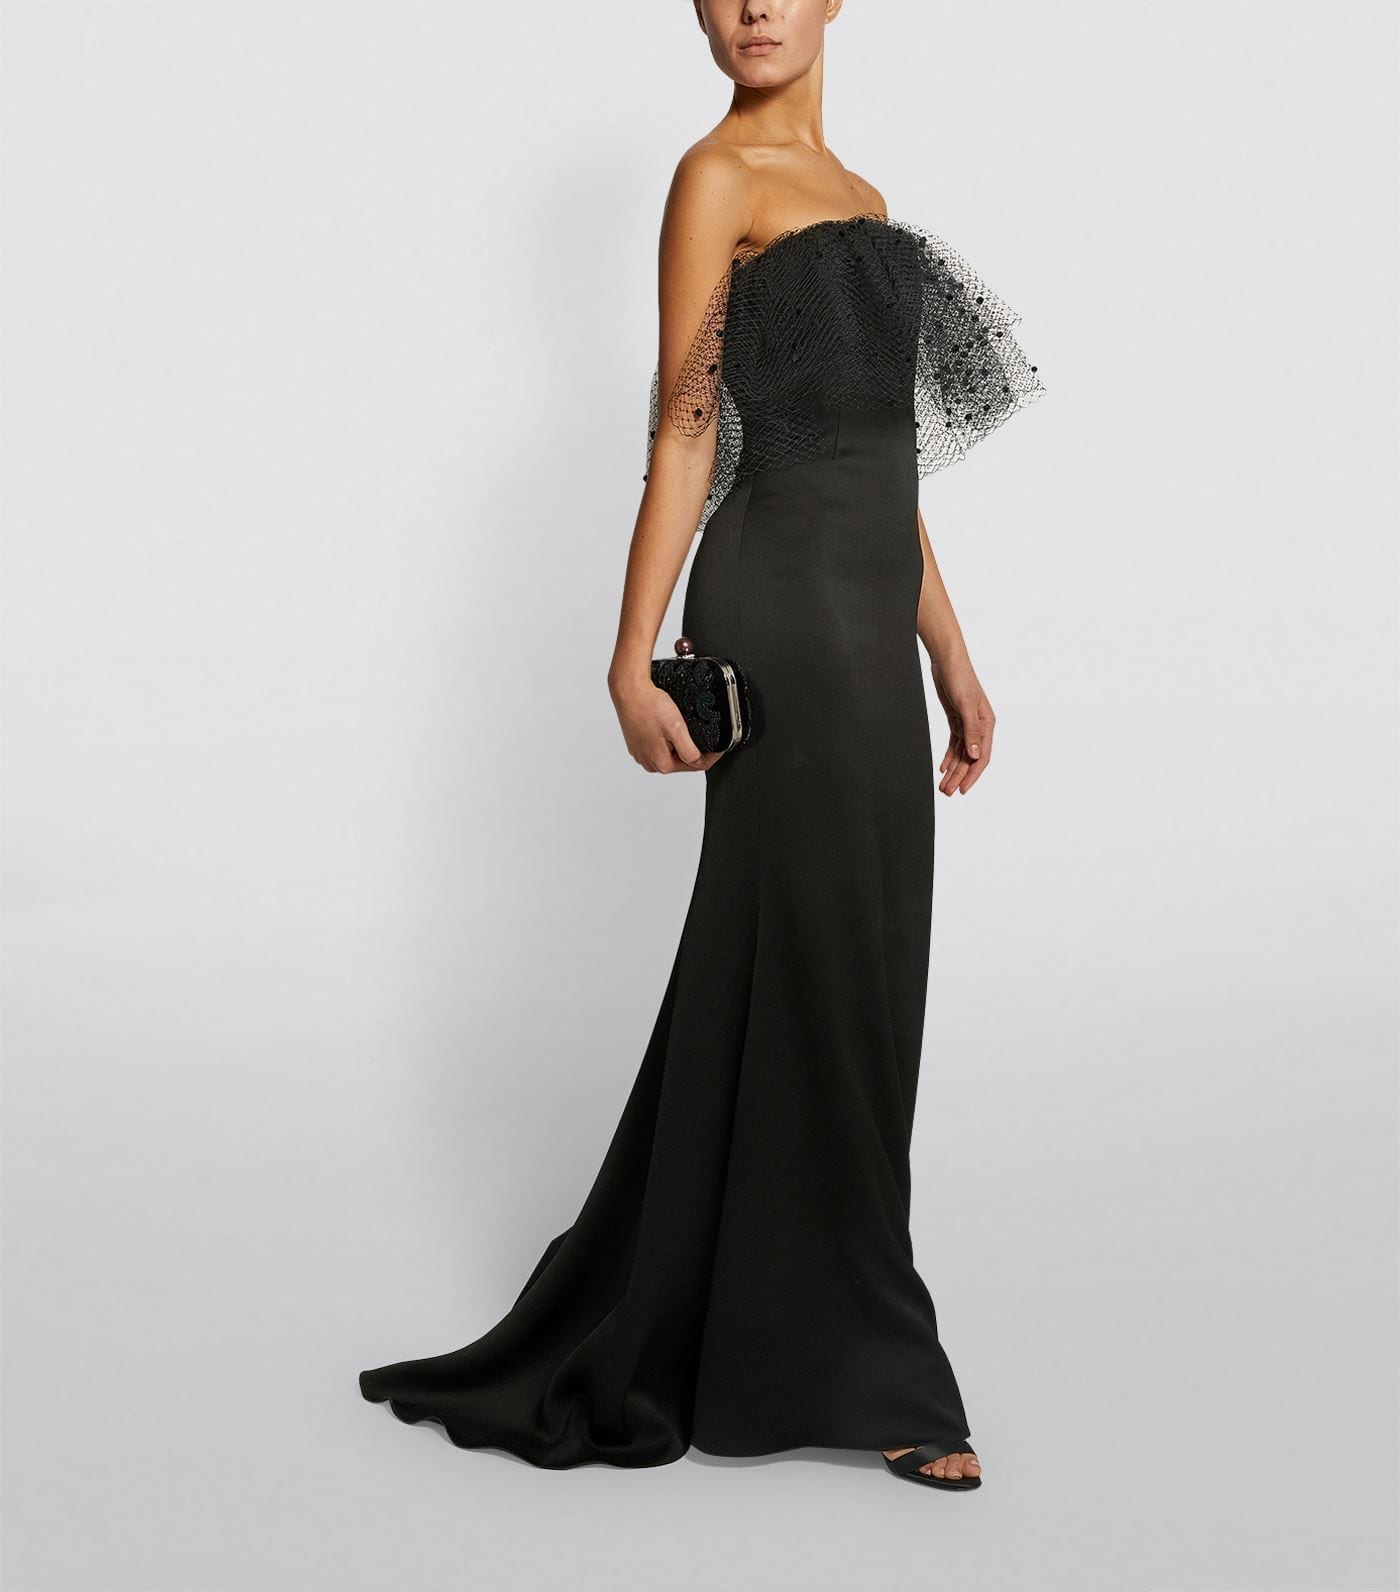 ALEXIS MABILLE Voile Overlay Strapless Gown